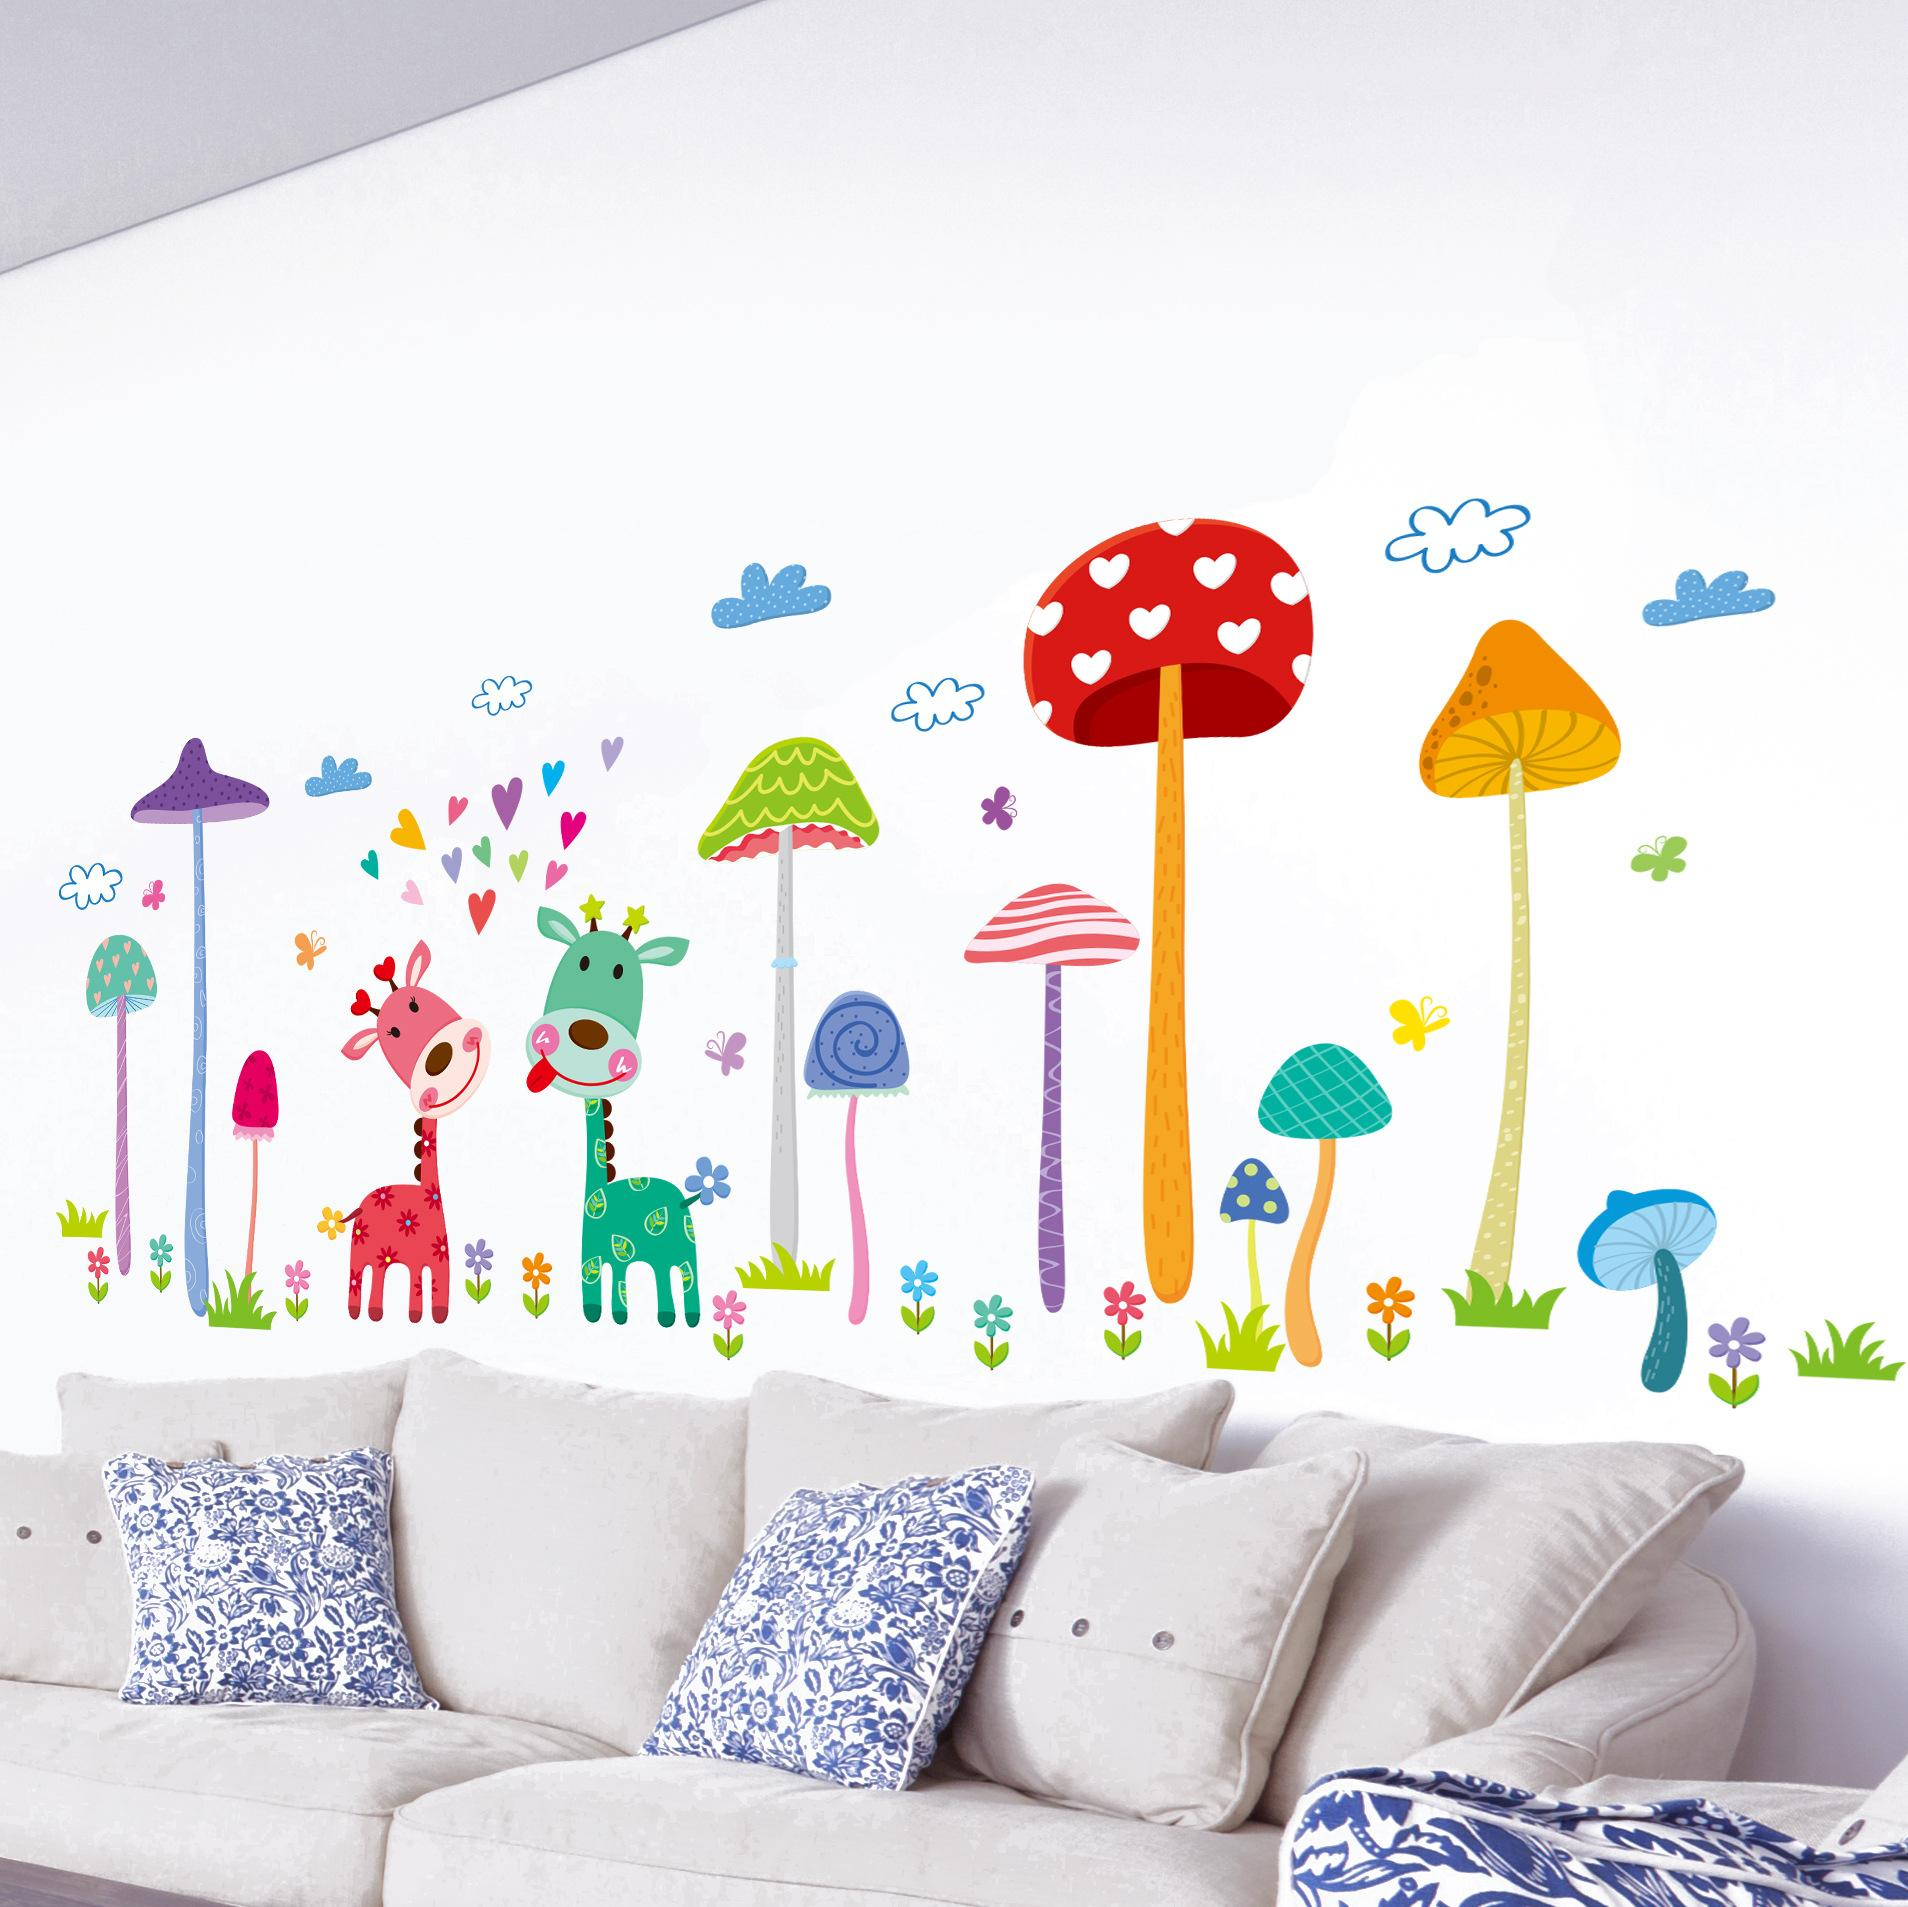 Mural Art Designs For Home